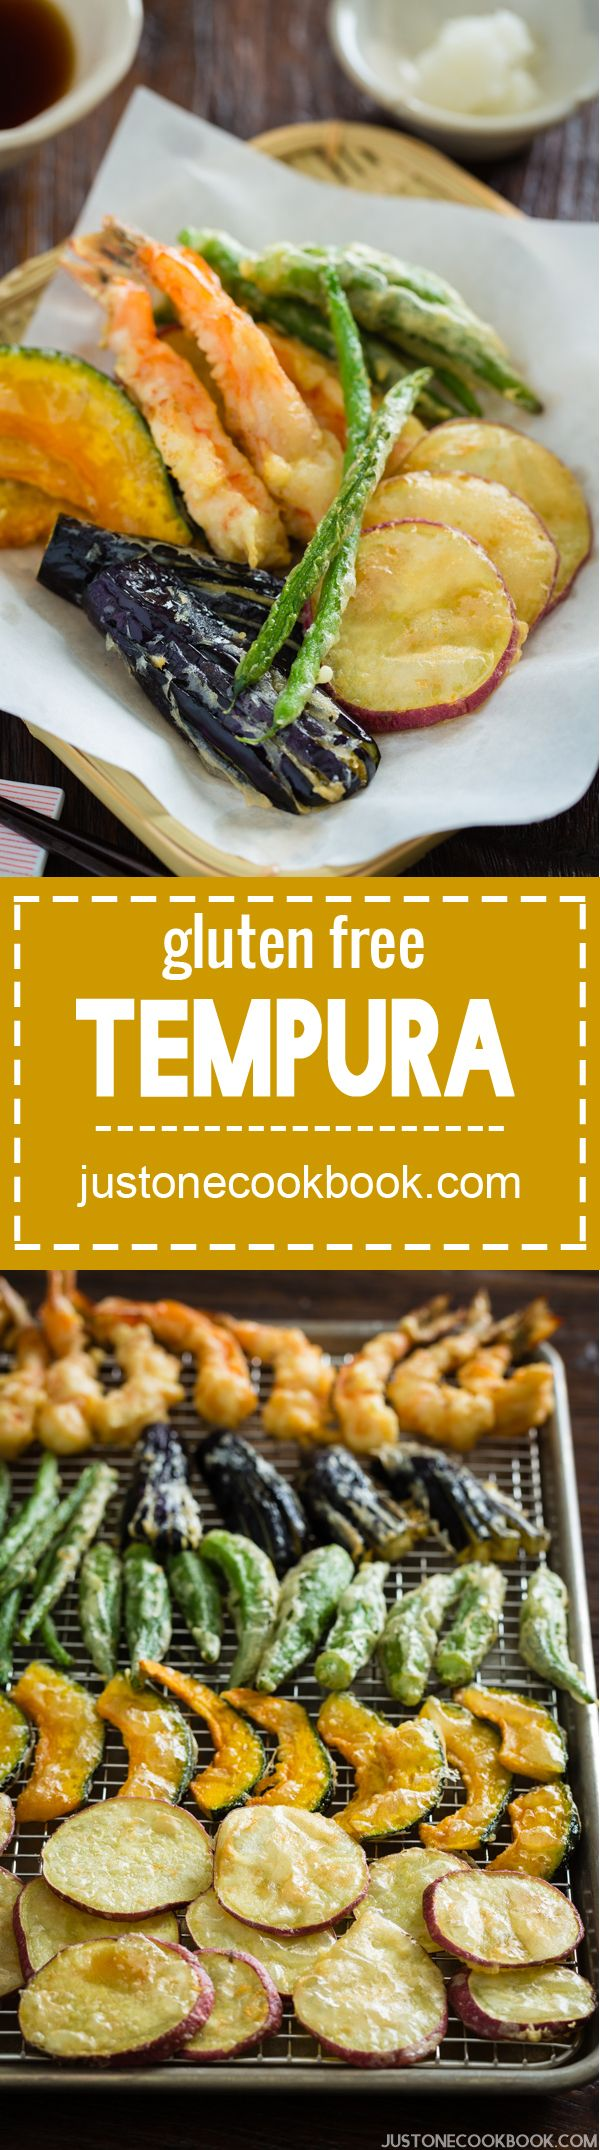 Gluten Free Tempura | Easy Japanese Recipes at JustOneCookbook.com